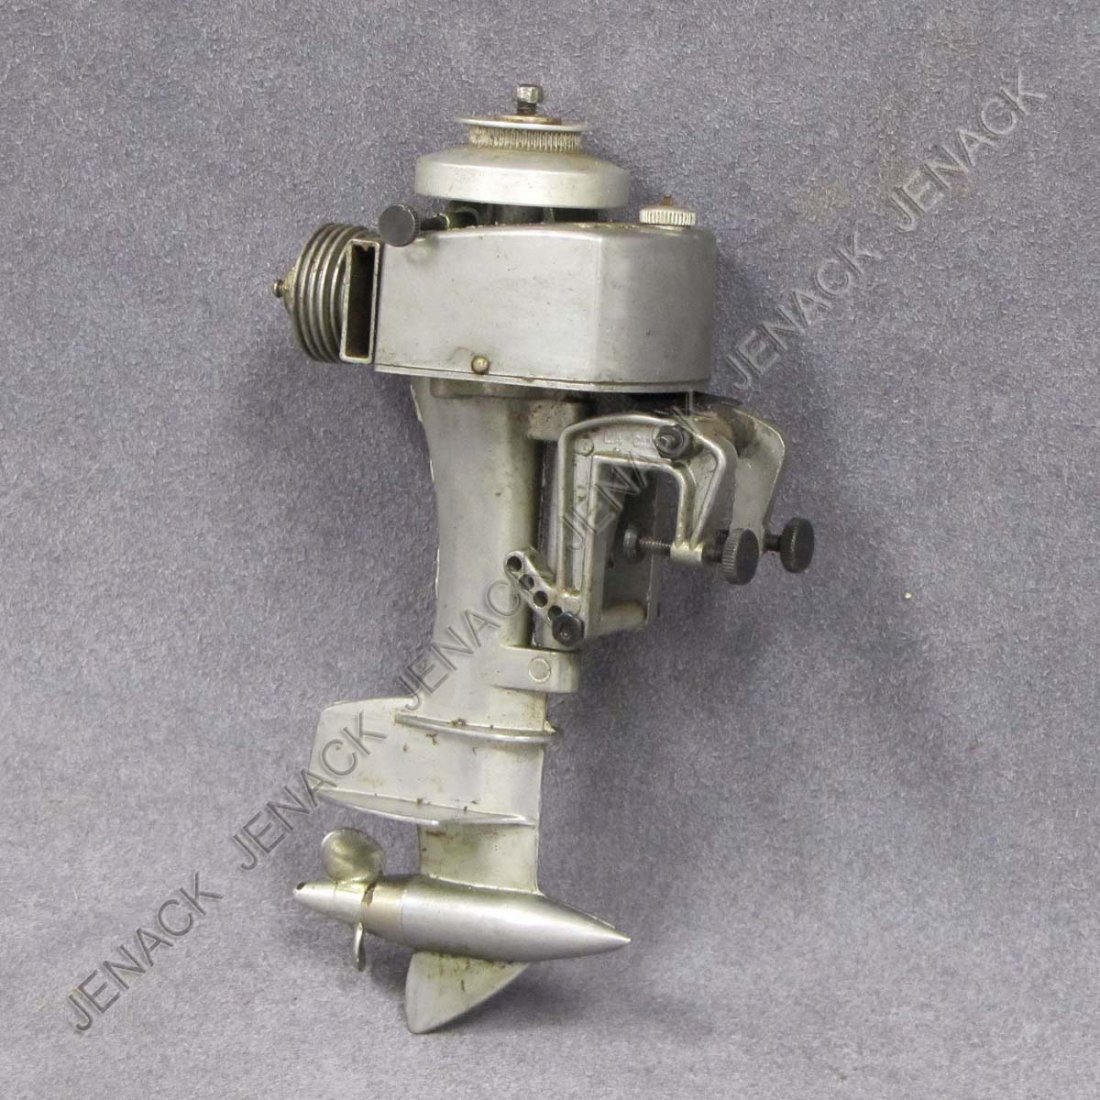 9: MINIATURE KB ALLYN GAS POWERED OUTBOARD MOTOR